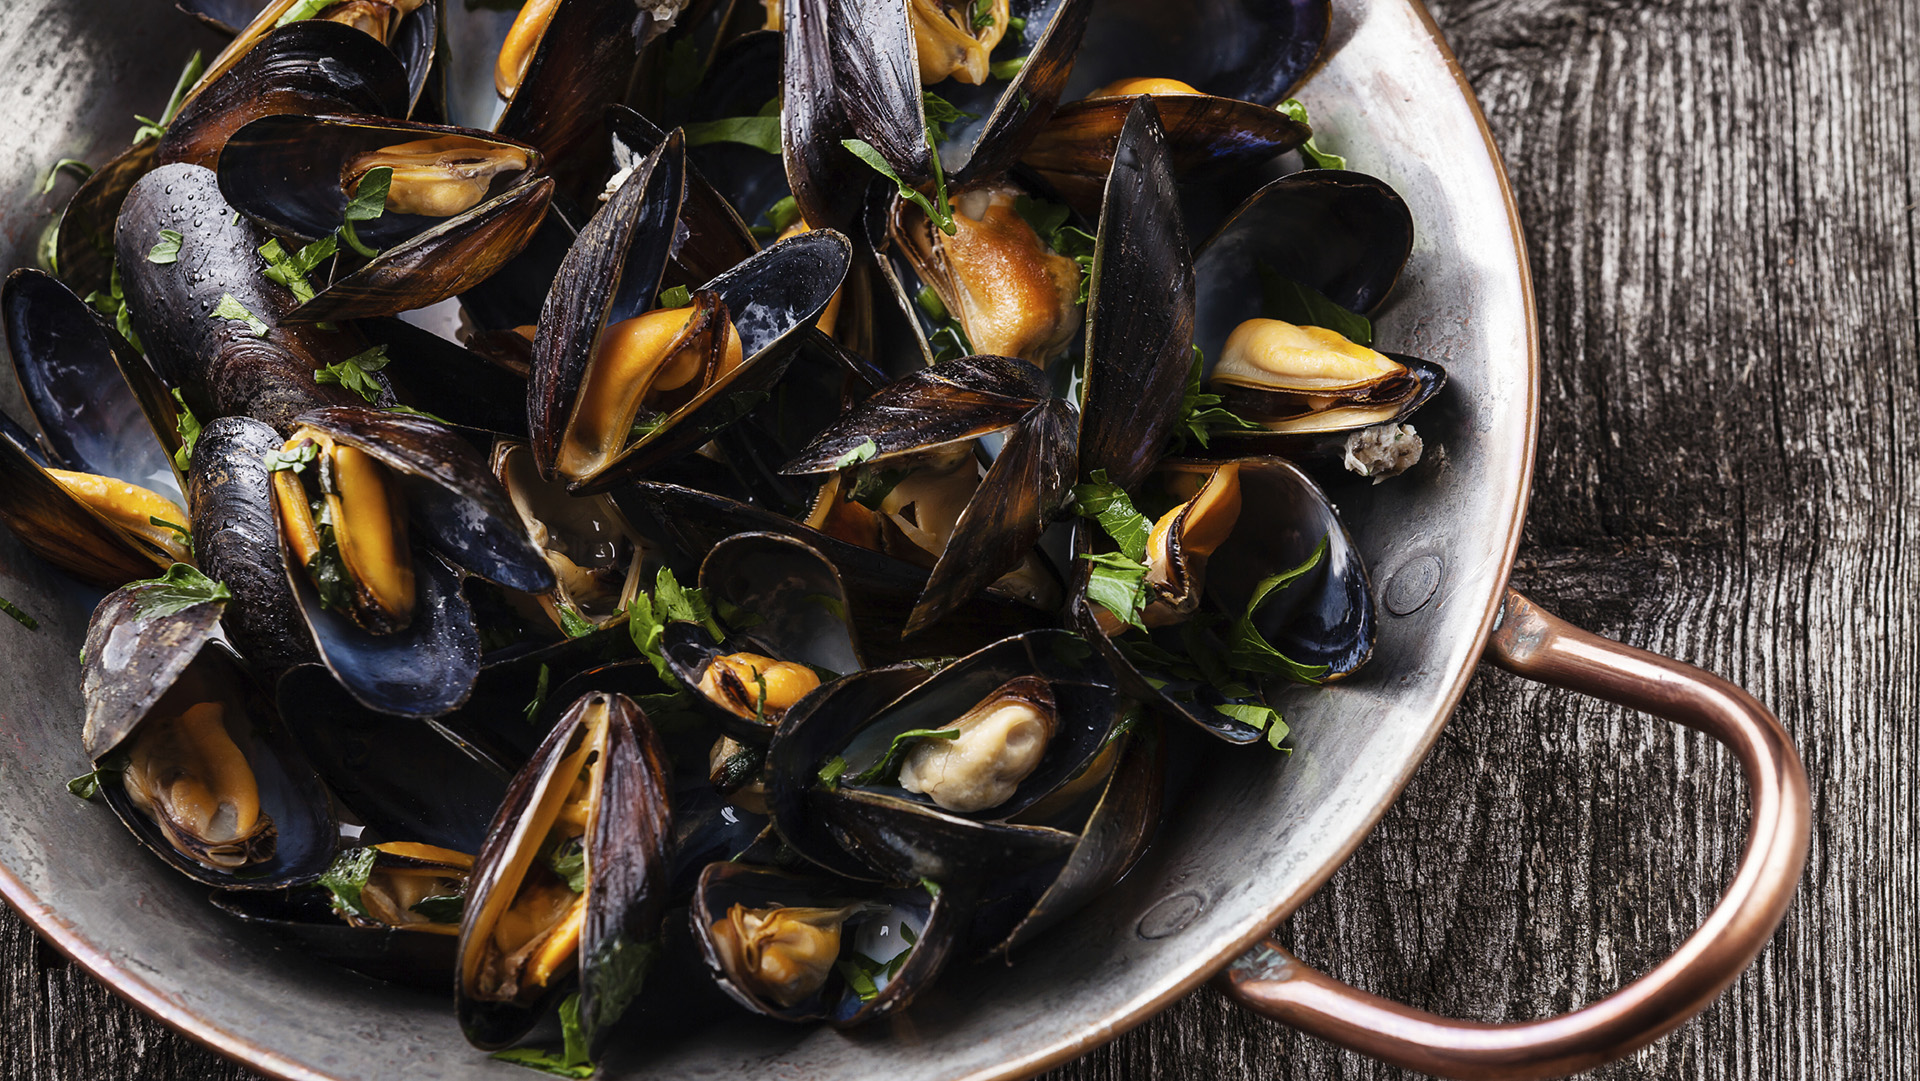 Why we should eat more mussels | Live